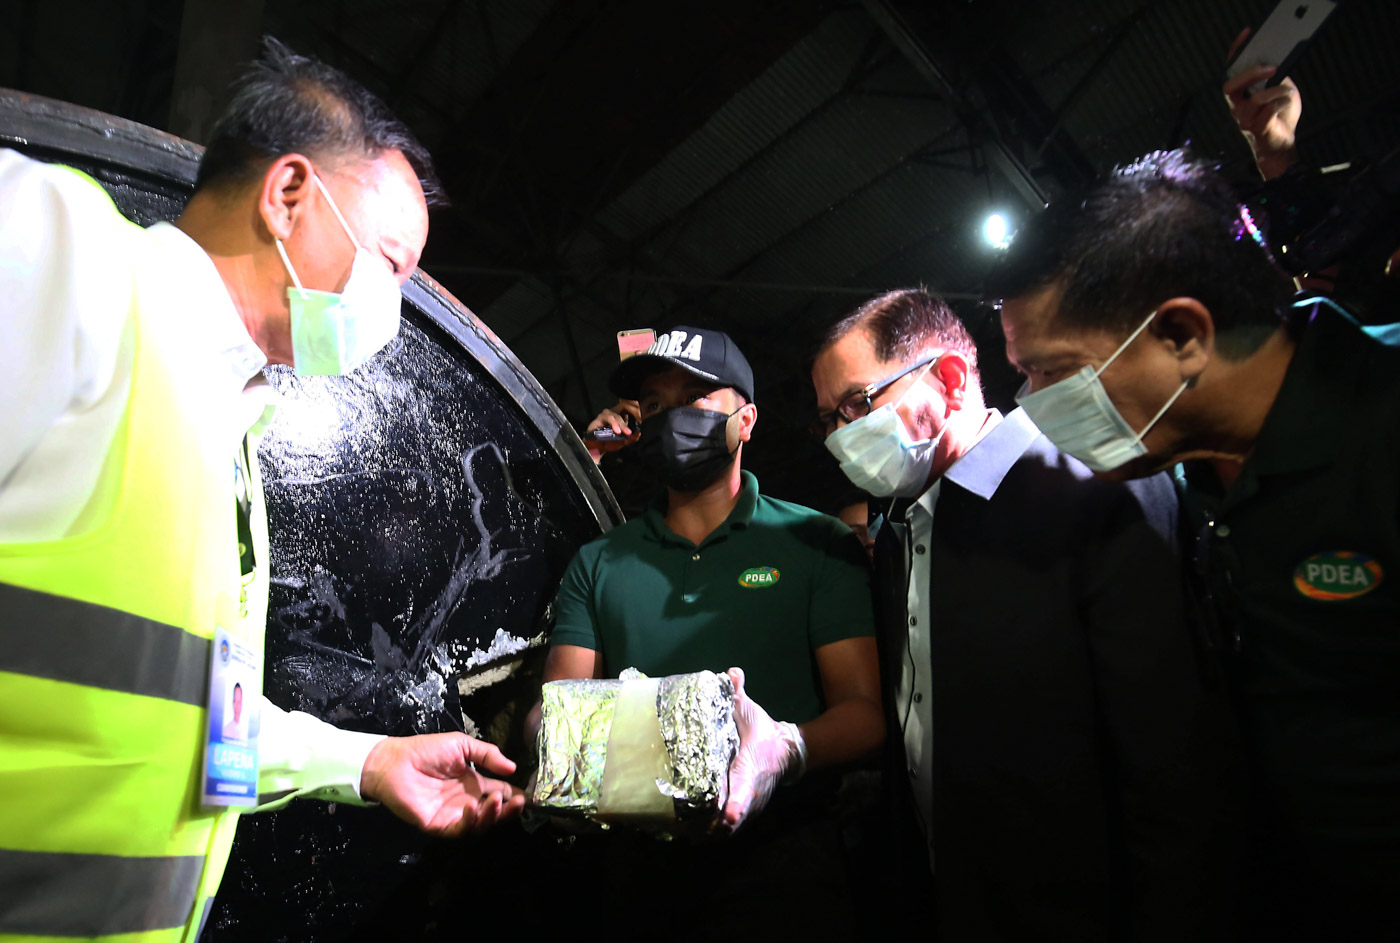 'SAME LIFTERS'. Then Bureau of Customs Commissioner Isidro Lapeu00f1a and PDEA Director General Aaron Aquino extract the alleged shabu worth P2.4 billion inside magnetic lifters at the MICP on August 7. Photo by Ben Nabong/Rappler